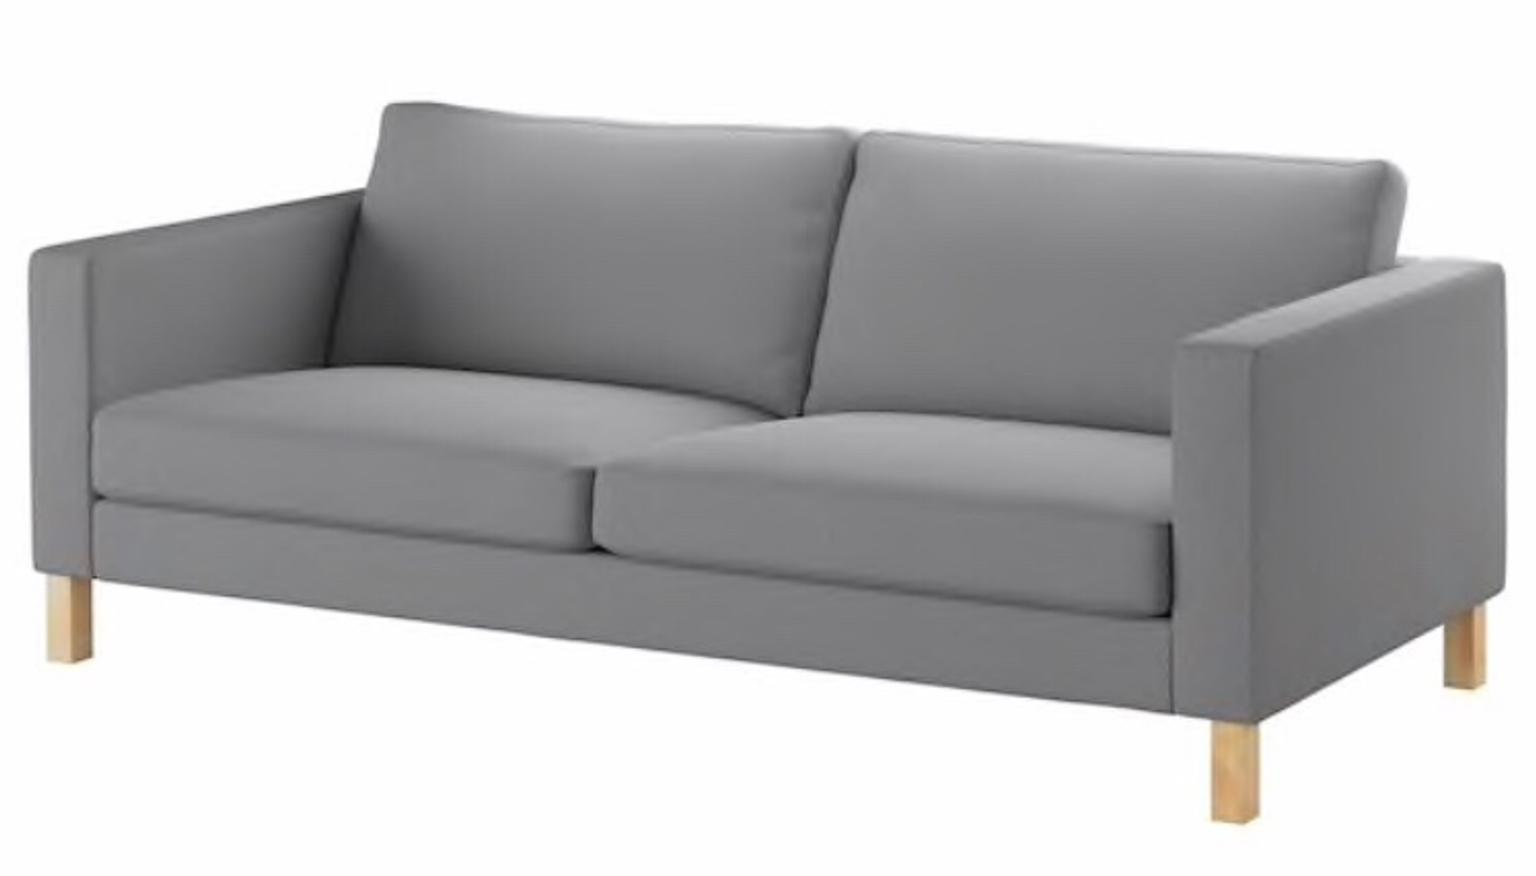 Stupendous Ikea Karlstad 2 Seater Grey Sofa Covers X2 Gmtry Best Dining Table And Chair Ideas Images Gmtryco